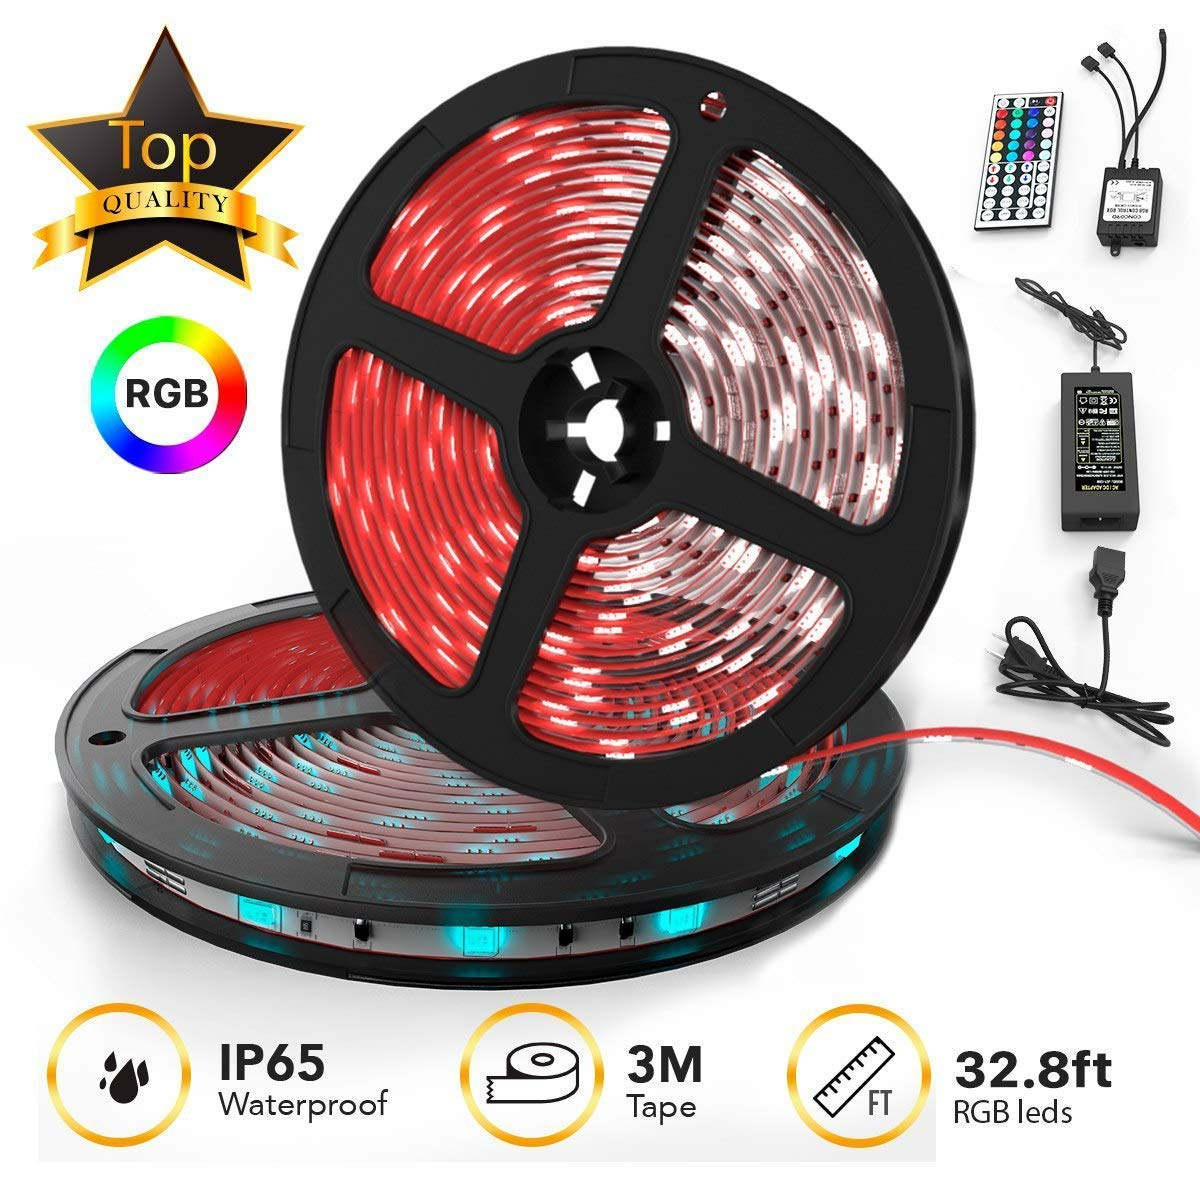 Tbi Pro 328ft 300leds Smd 5050 Rgb 44 Key Remote Led Strip Wiring Diagram 8 Rgbw Series With Parallel Controller Upgraded 2019 Lights Kit 2 Pack X 5m W Extra Adhesive 3m Tape